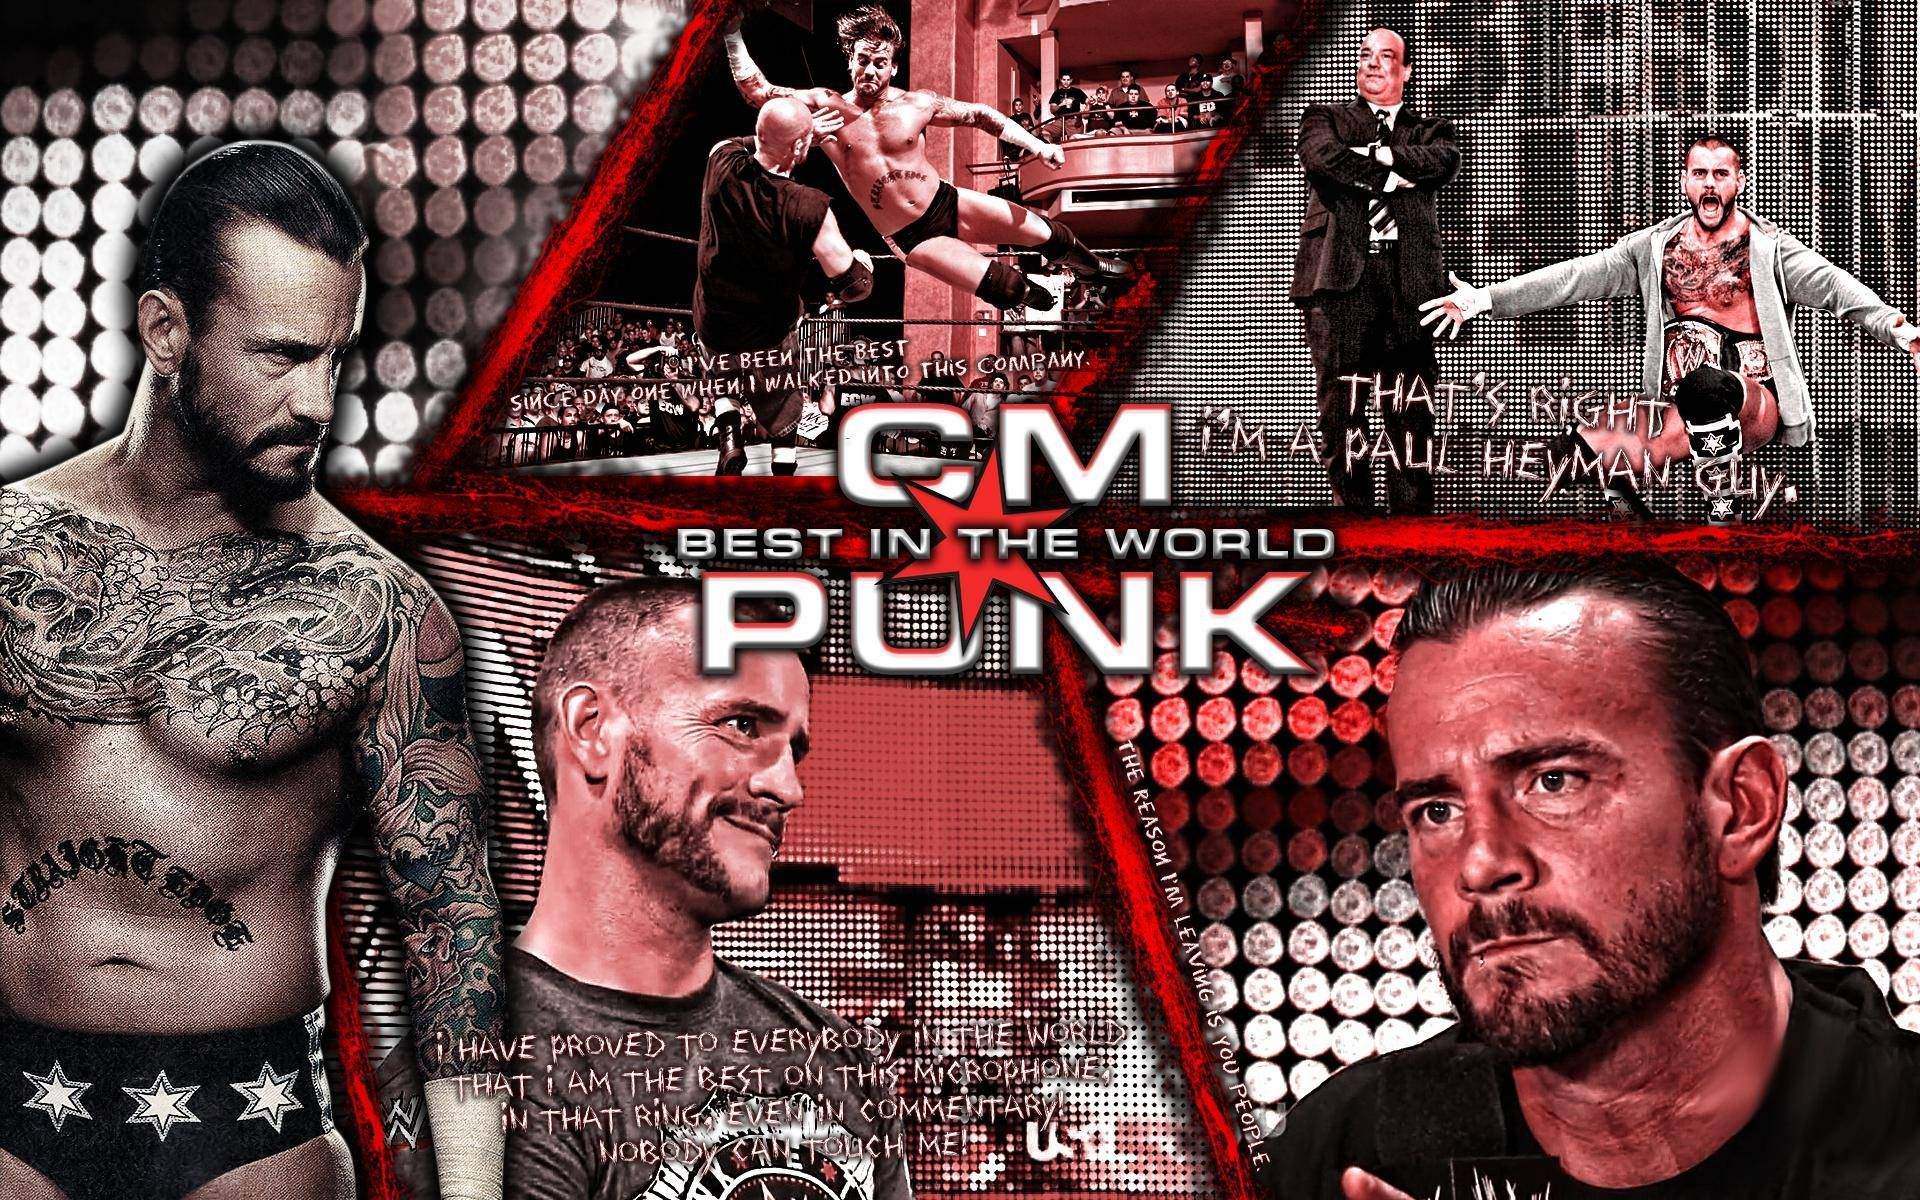 Wwe cm punk wallpapers wallpaper cave all wallpapers pinterest wwe cm punk wallpapers wallpaper cave voltagebd Choice Image